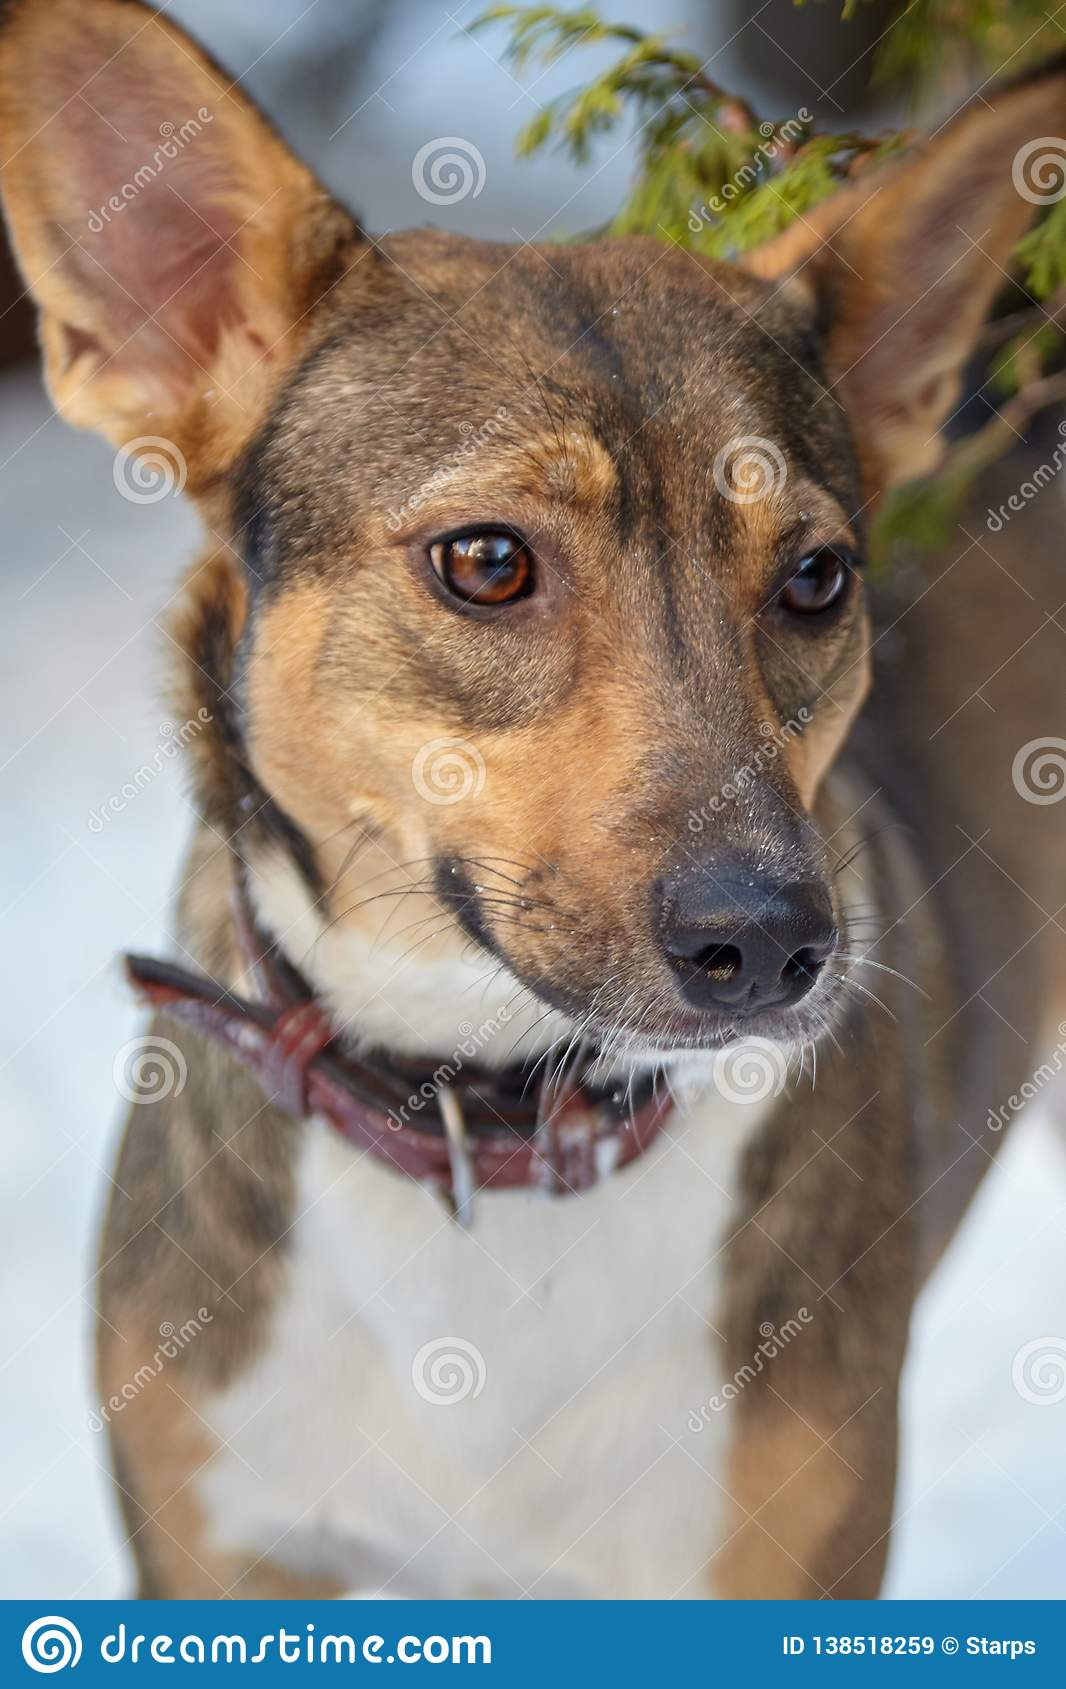 Adopted pretty mongrel previous stray dog stands alone at the snow background, with brown leather collar, attentive look.